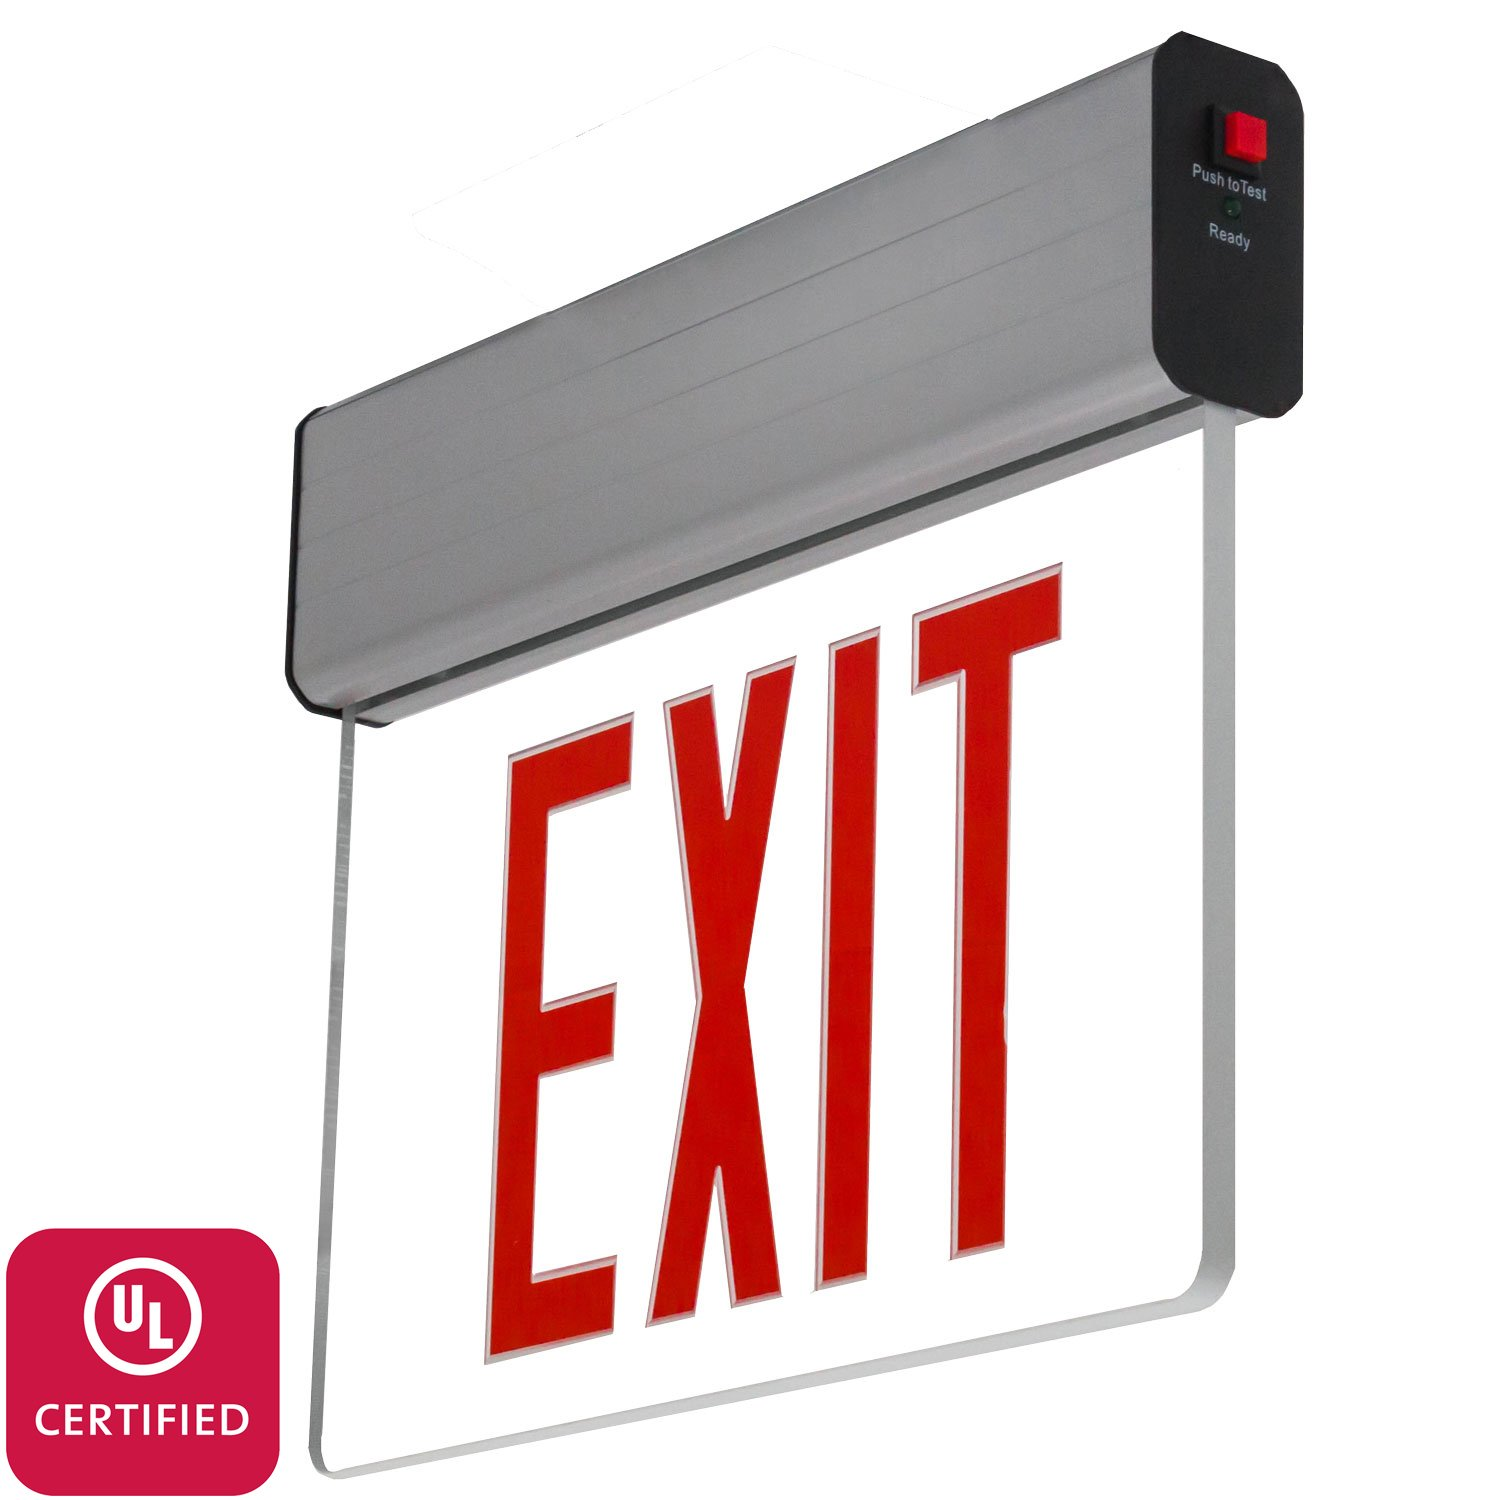 LFI Lights - UL Certified - Hardwired Red LED Edge Lit Exit Sign Light - Surface Mount Battery Backup - ELSMR